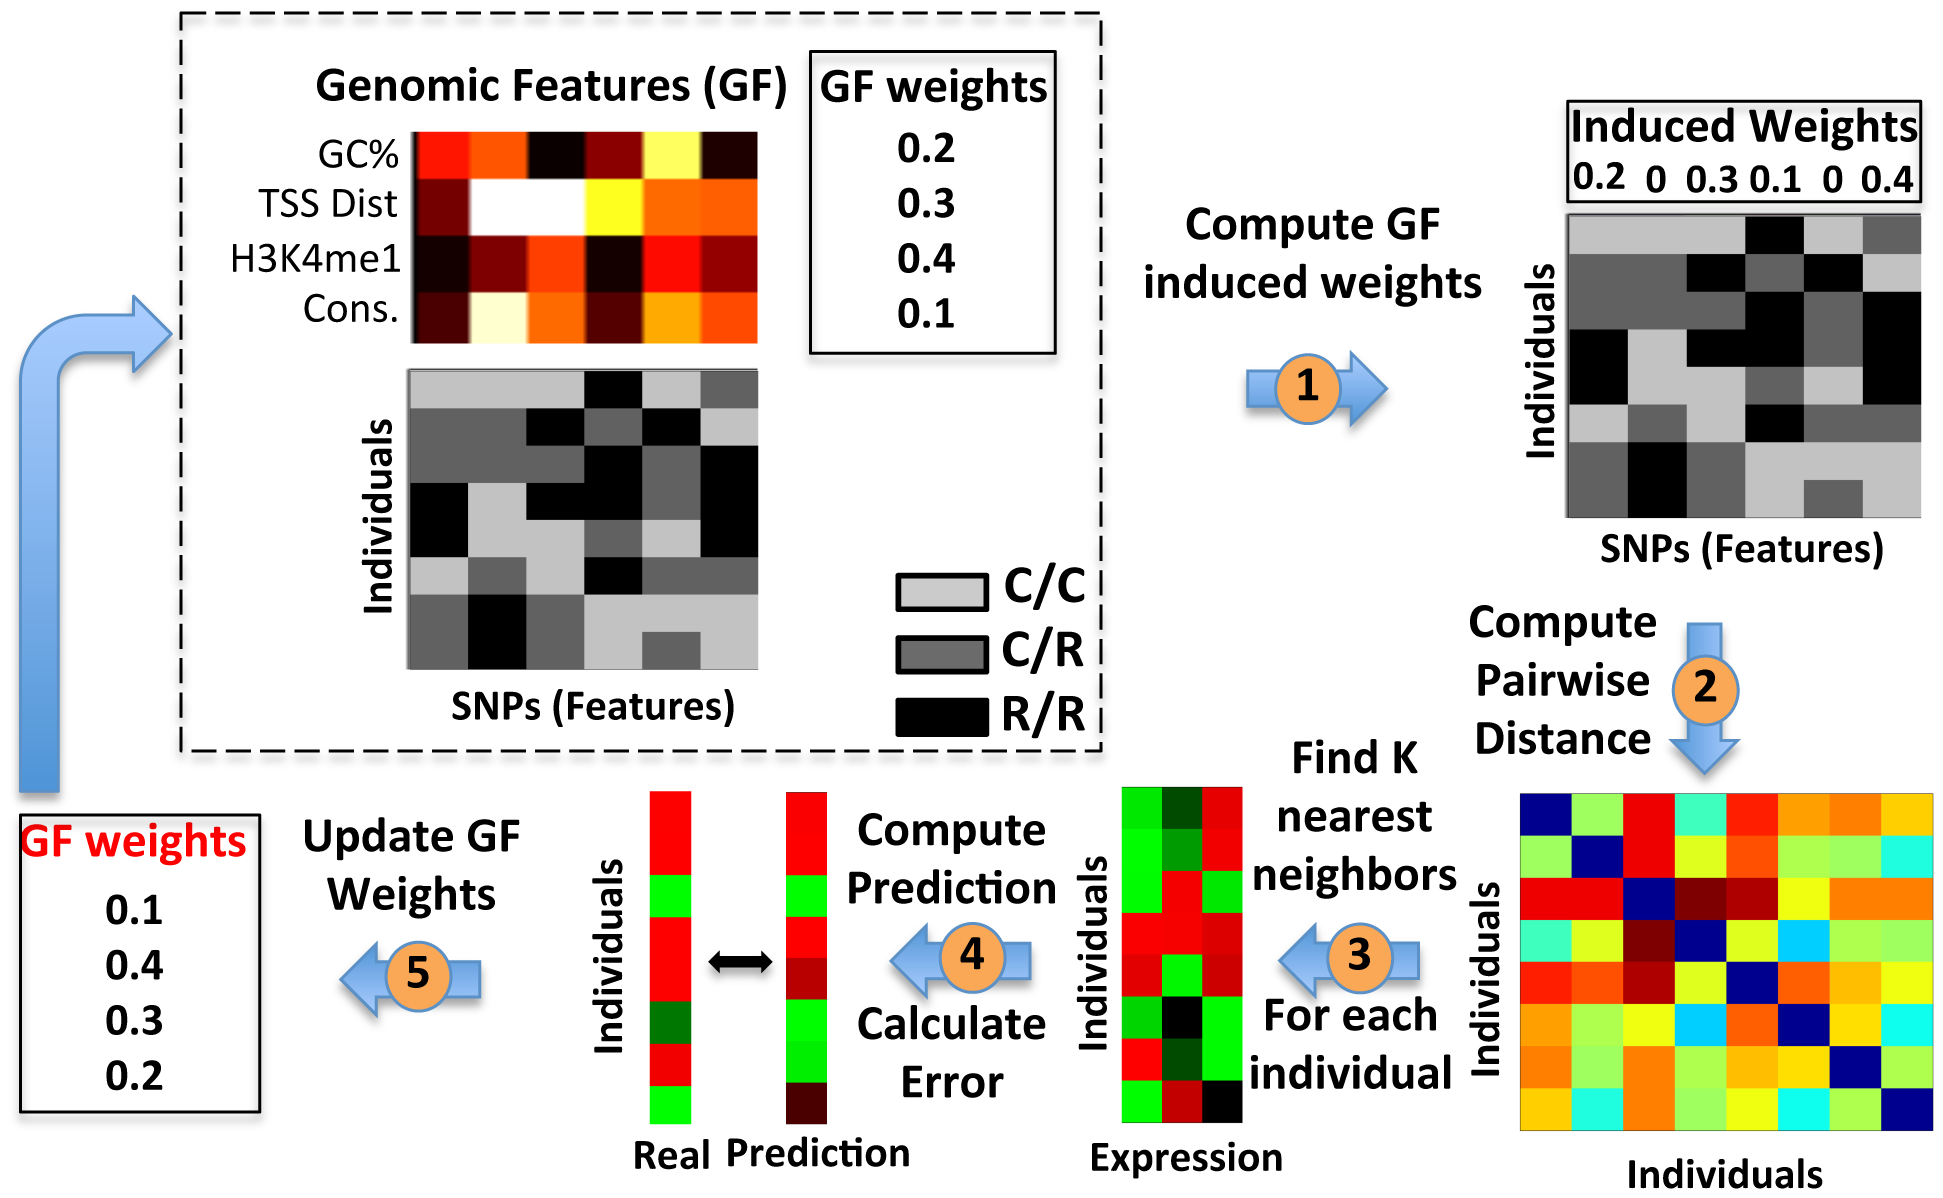 Extending the K-Nearest-Neighbor algorithm to integrate genomic features.